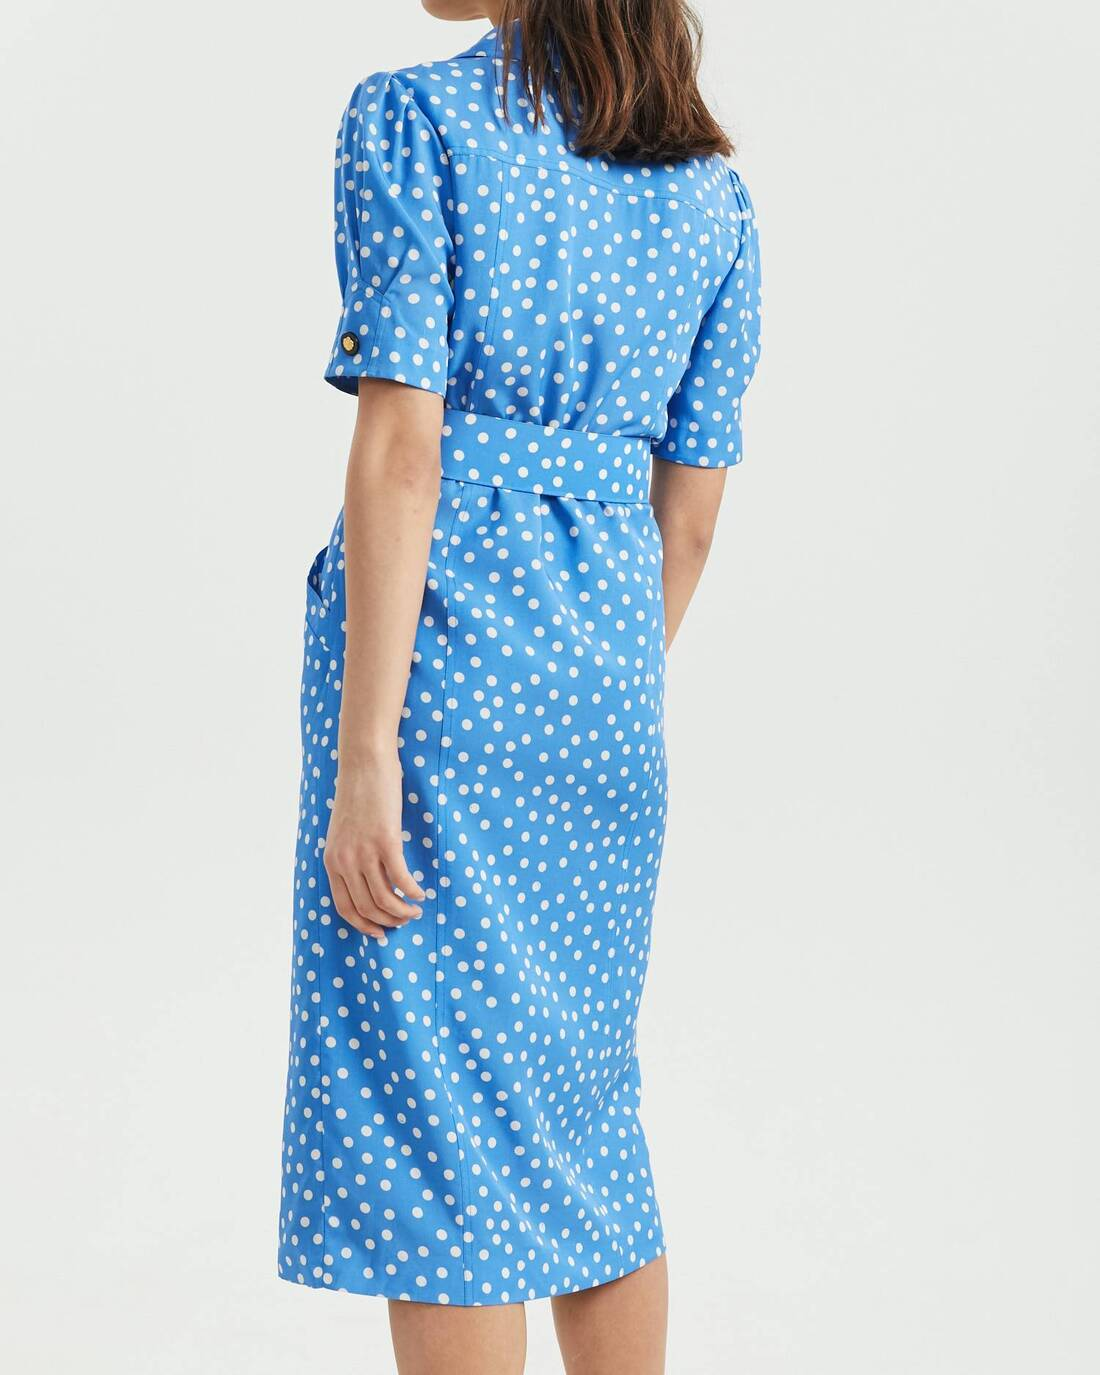 Printed vintage style suit dress